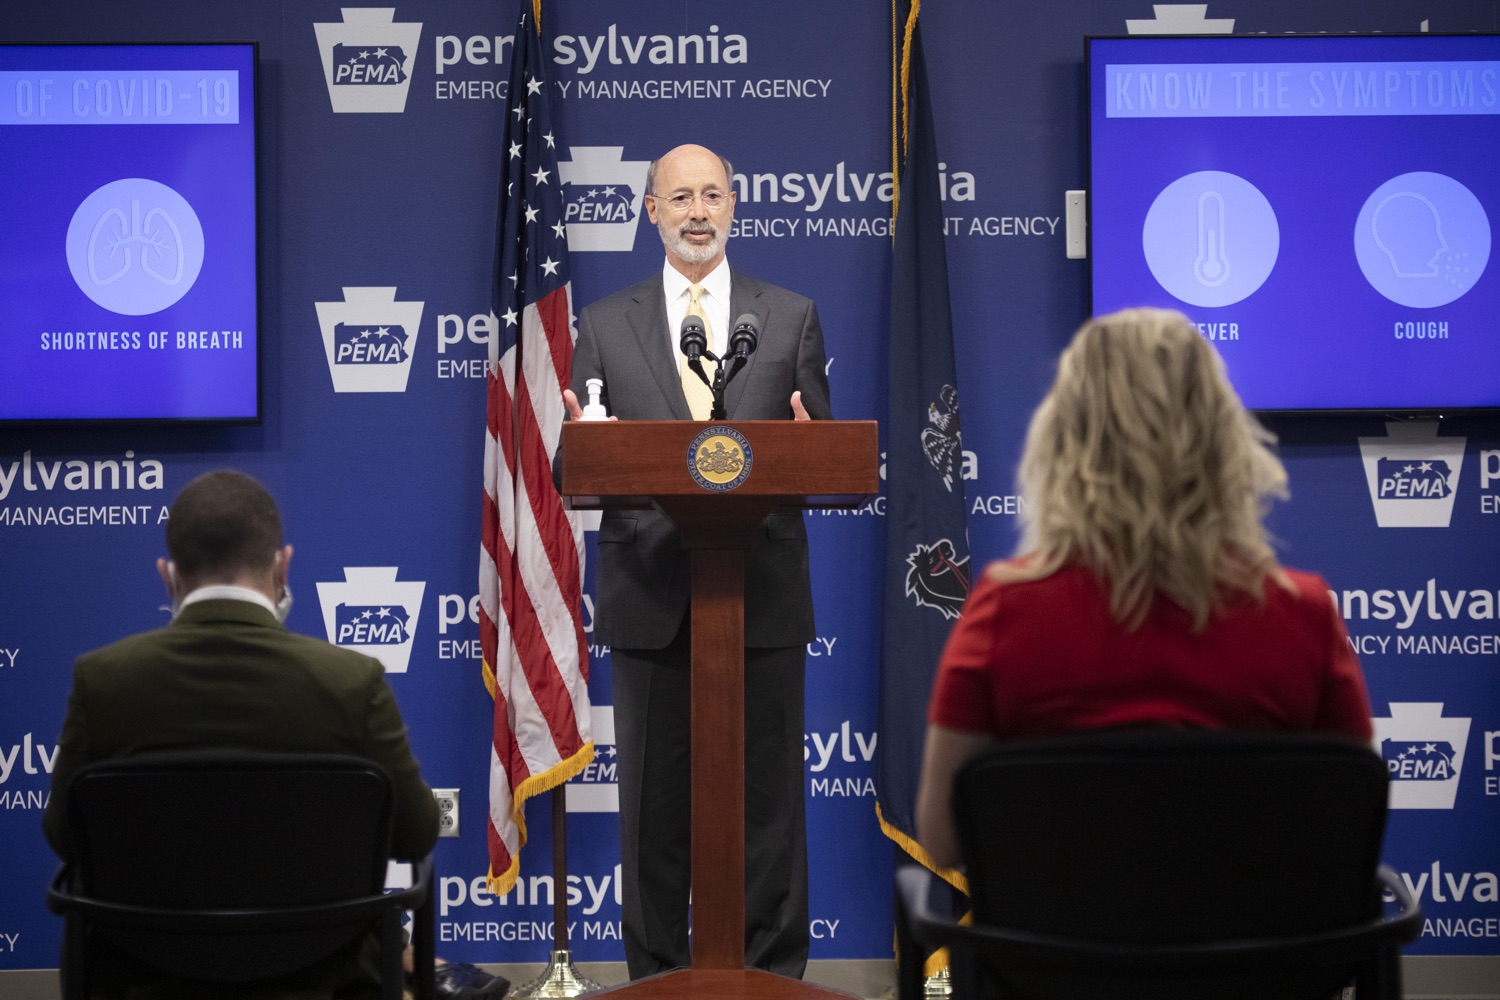 """<a href=""""https://filesource.wostreaming.net/commonwealthofpa/photo/18201_gov_orasure_dz_013.jpg"""" target=""""_blank"""">⇣Download Photo<br></a>Pennsylvania Governor Tom Wolf speaking to the press.  Today, Governor Tom Wolf announced that OraSure Technologies Inc., a developer and manufacturer of rapid diagnostic tests, collection and stabilization devices headquartered in Northampton County, will expand its manufacturing operations in the Lehigh Valley, creating 177 new, full-time jobs and retaining 233 jobs.  Harrisburg, PA  August 11, 2020"""